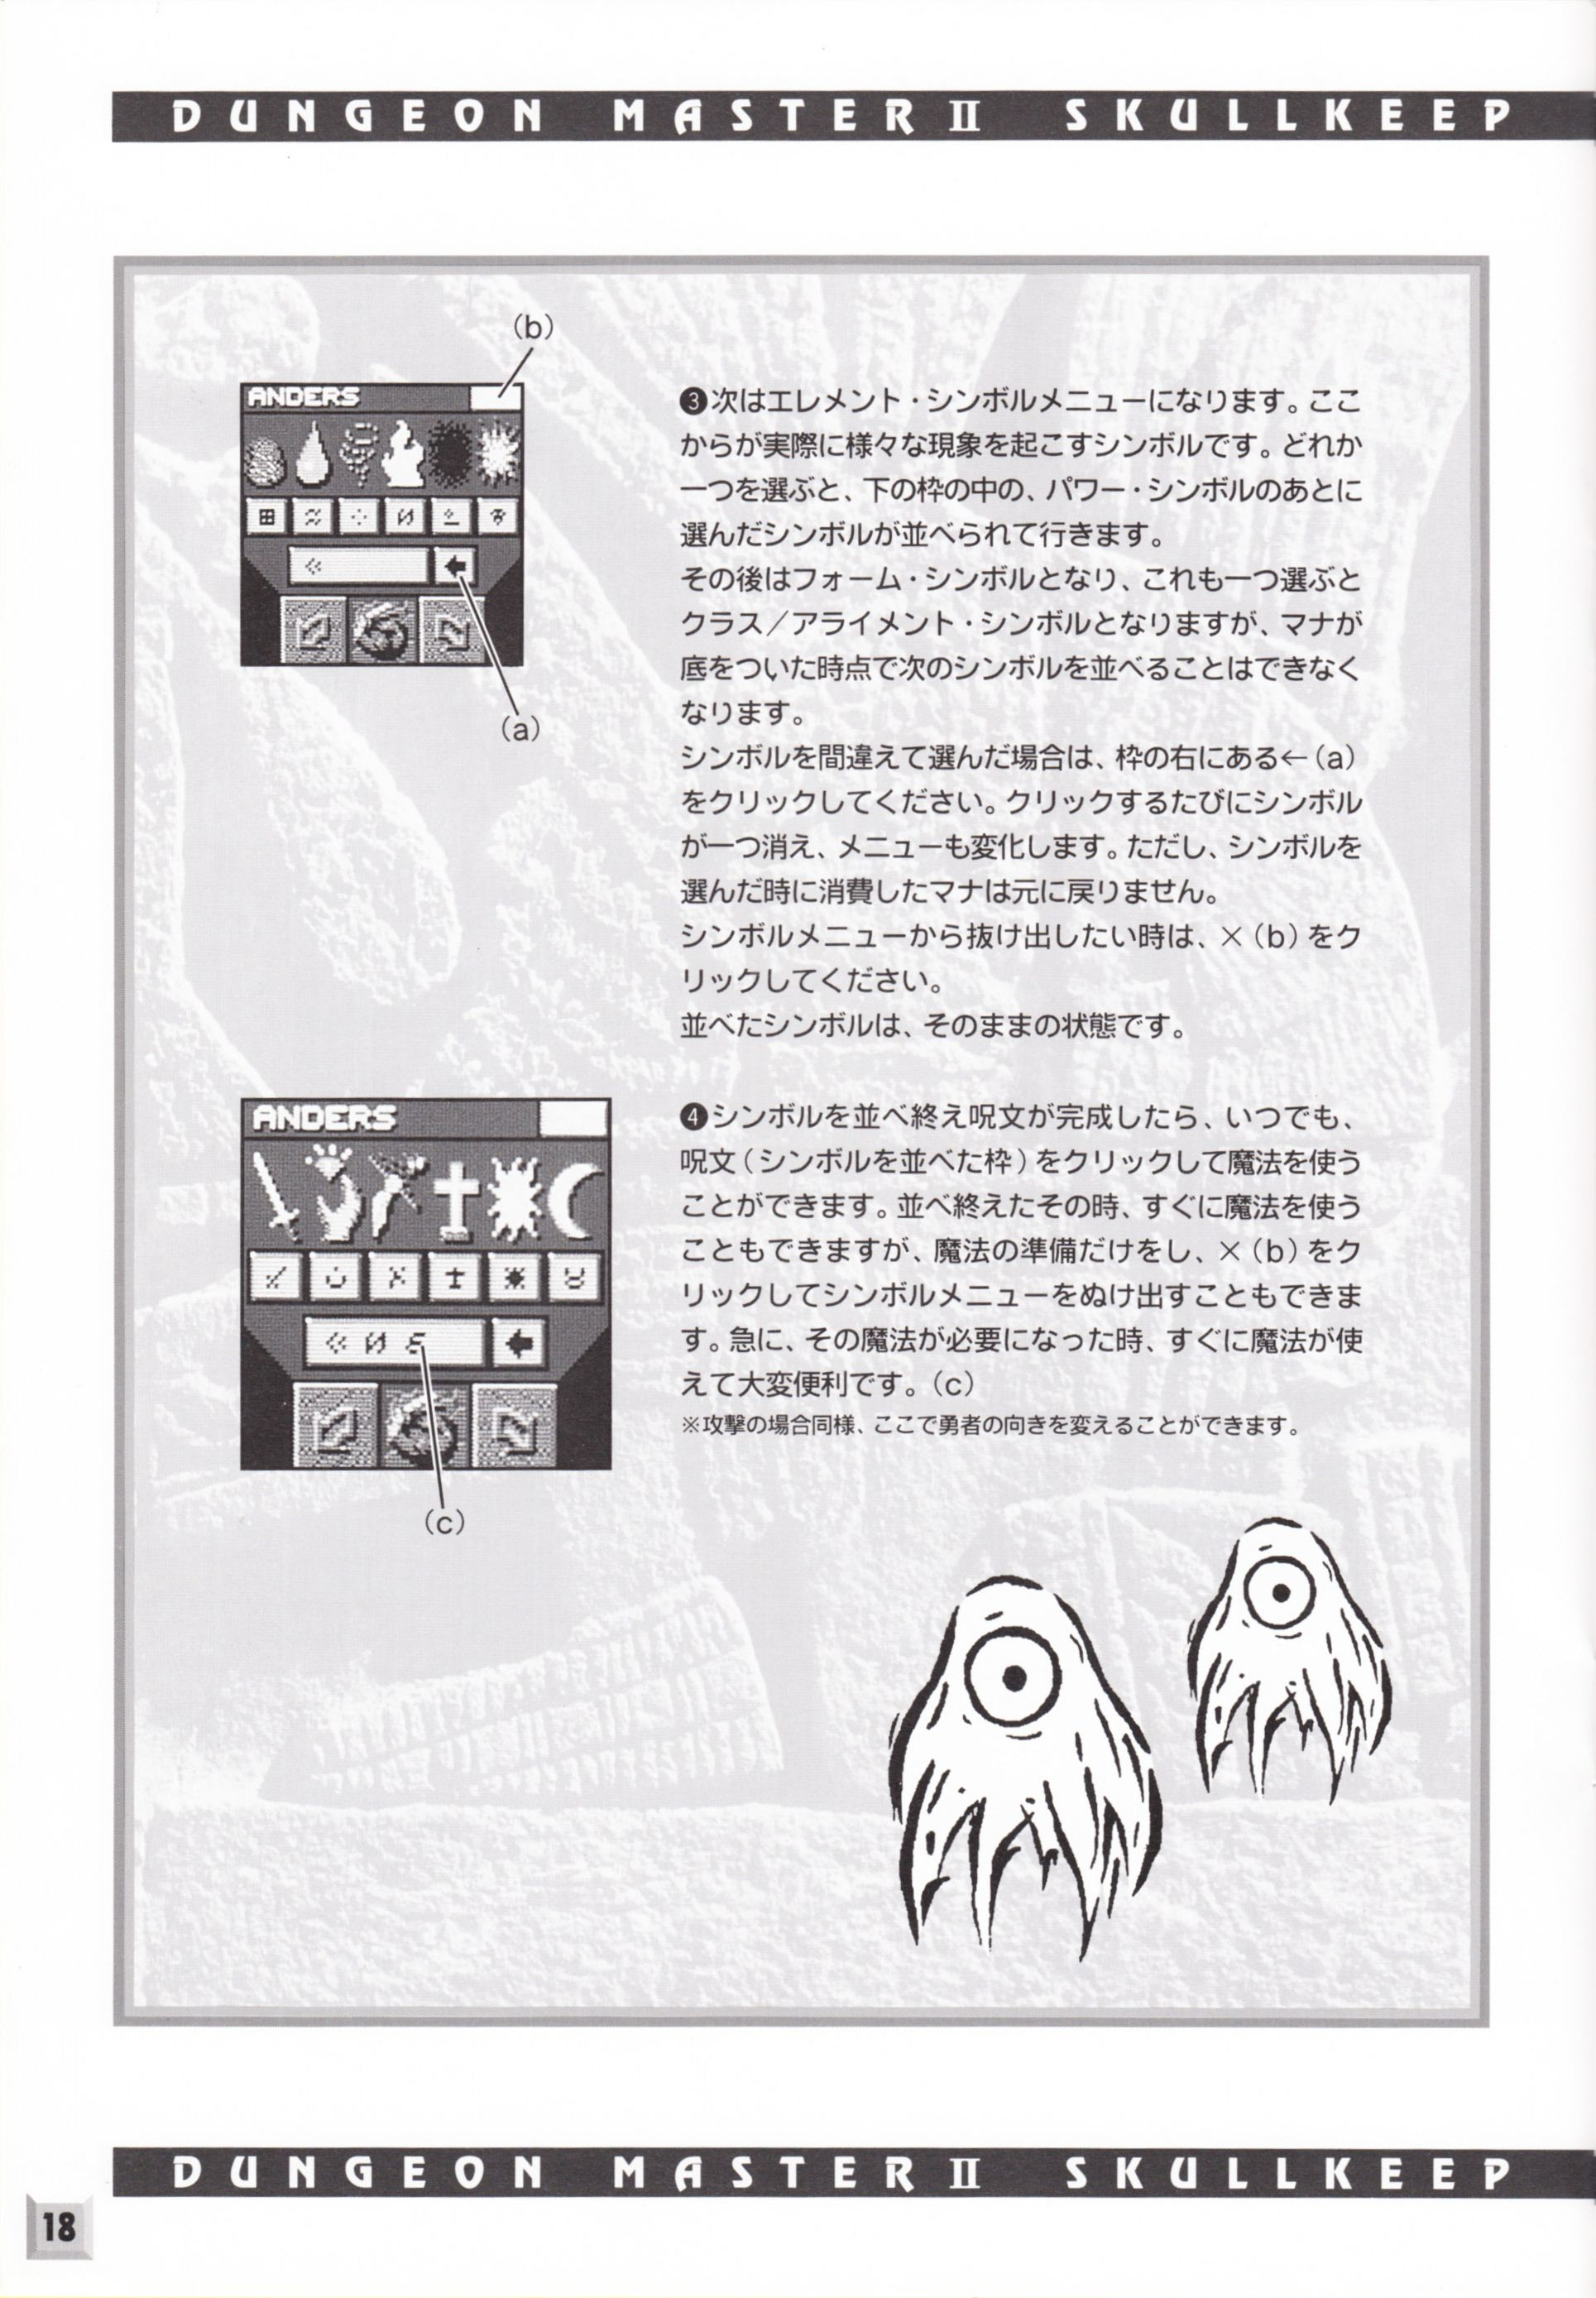 Game - Dungeon Master II - JP - PC-9801 - 3.5-inch - An Operation Manual - Page 020 - Scan